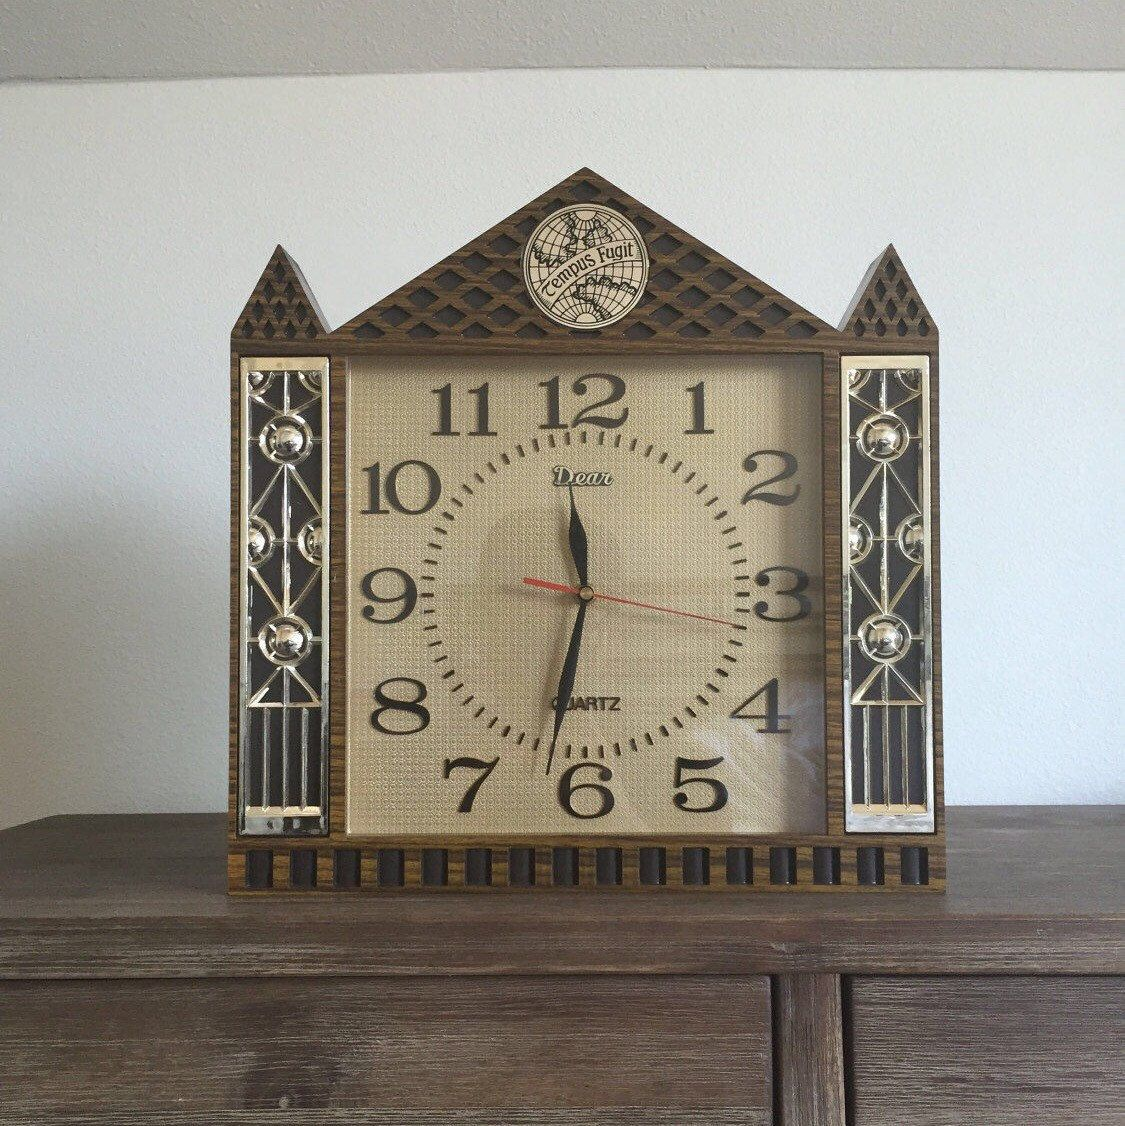 Vintage tempus fugit wallmantle clock steeple clock mantle vintage tempus fugit wallmantle clock steeple clock mantle clock quartz wall clock tempus fugit clock vintage clock working clock amipublicfo Image collections